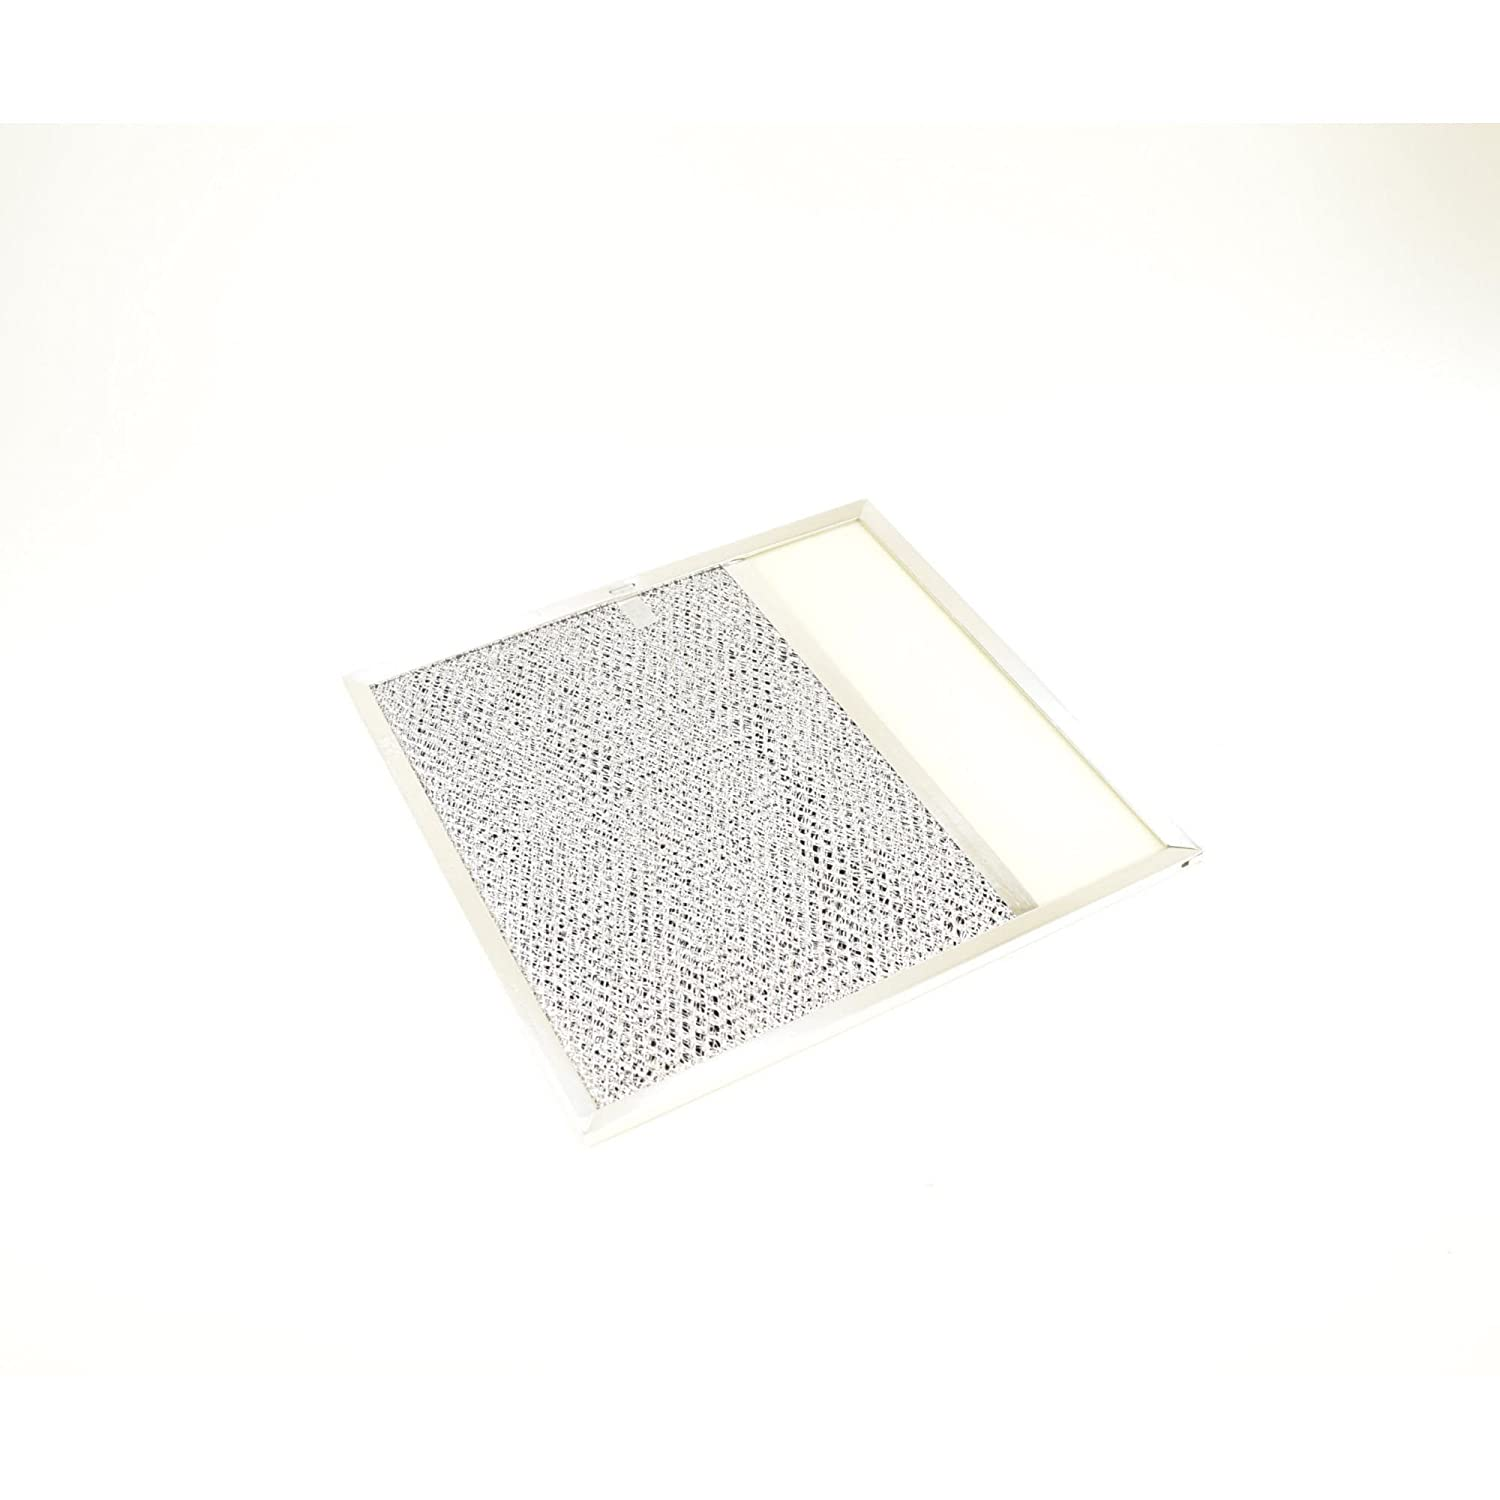 Whirlpool Range Hood Microwave Oven Hood Vent Grease Filter with Lens Replaces 883149 (4 Filters)